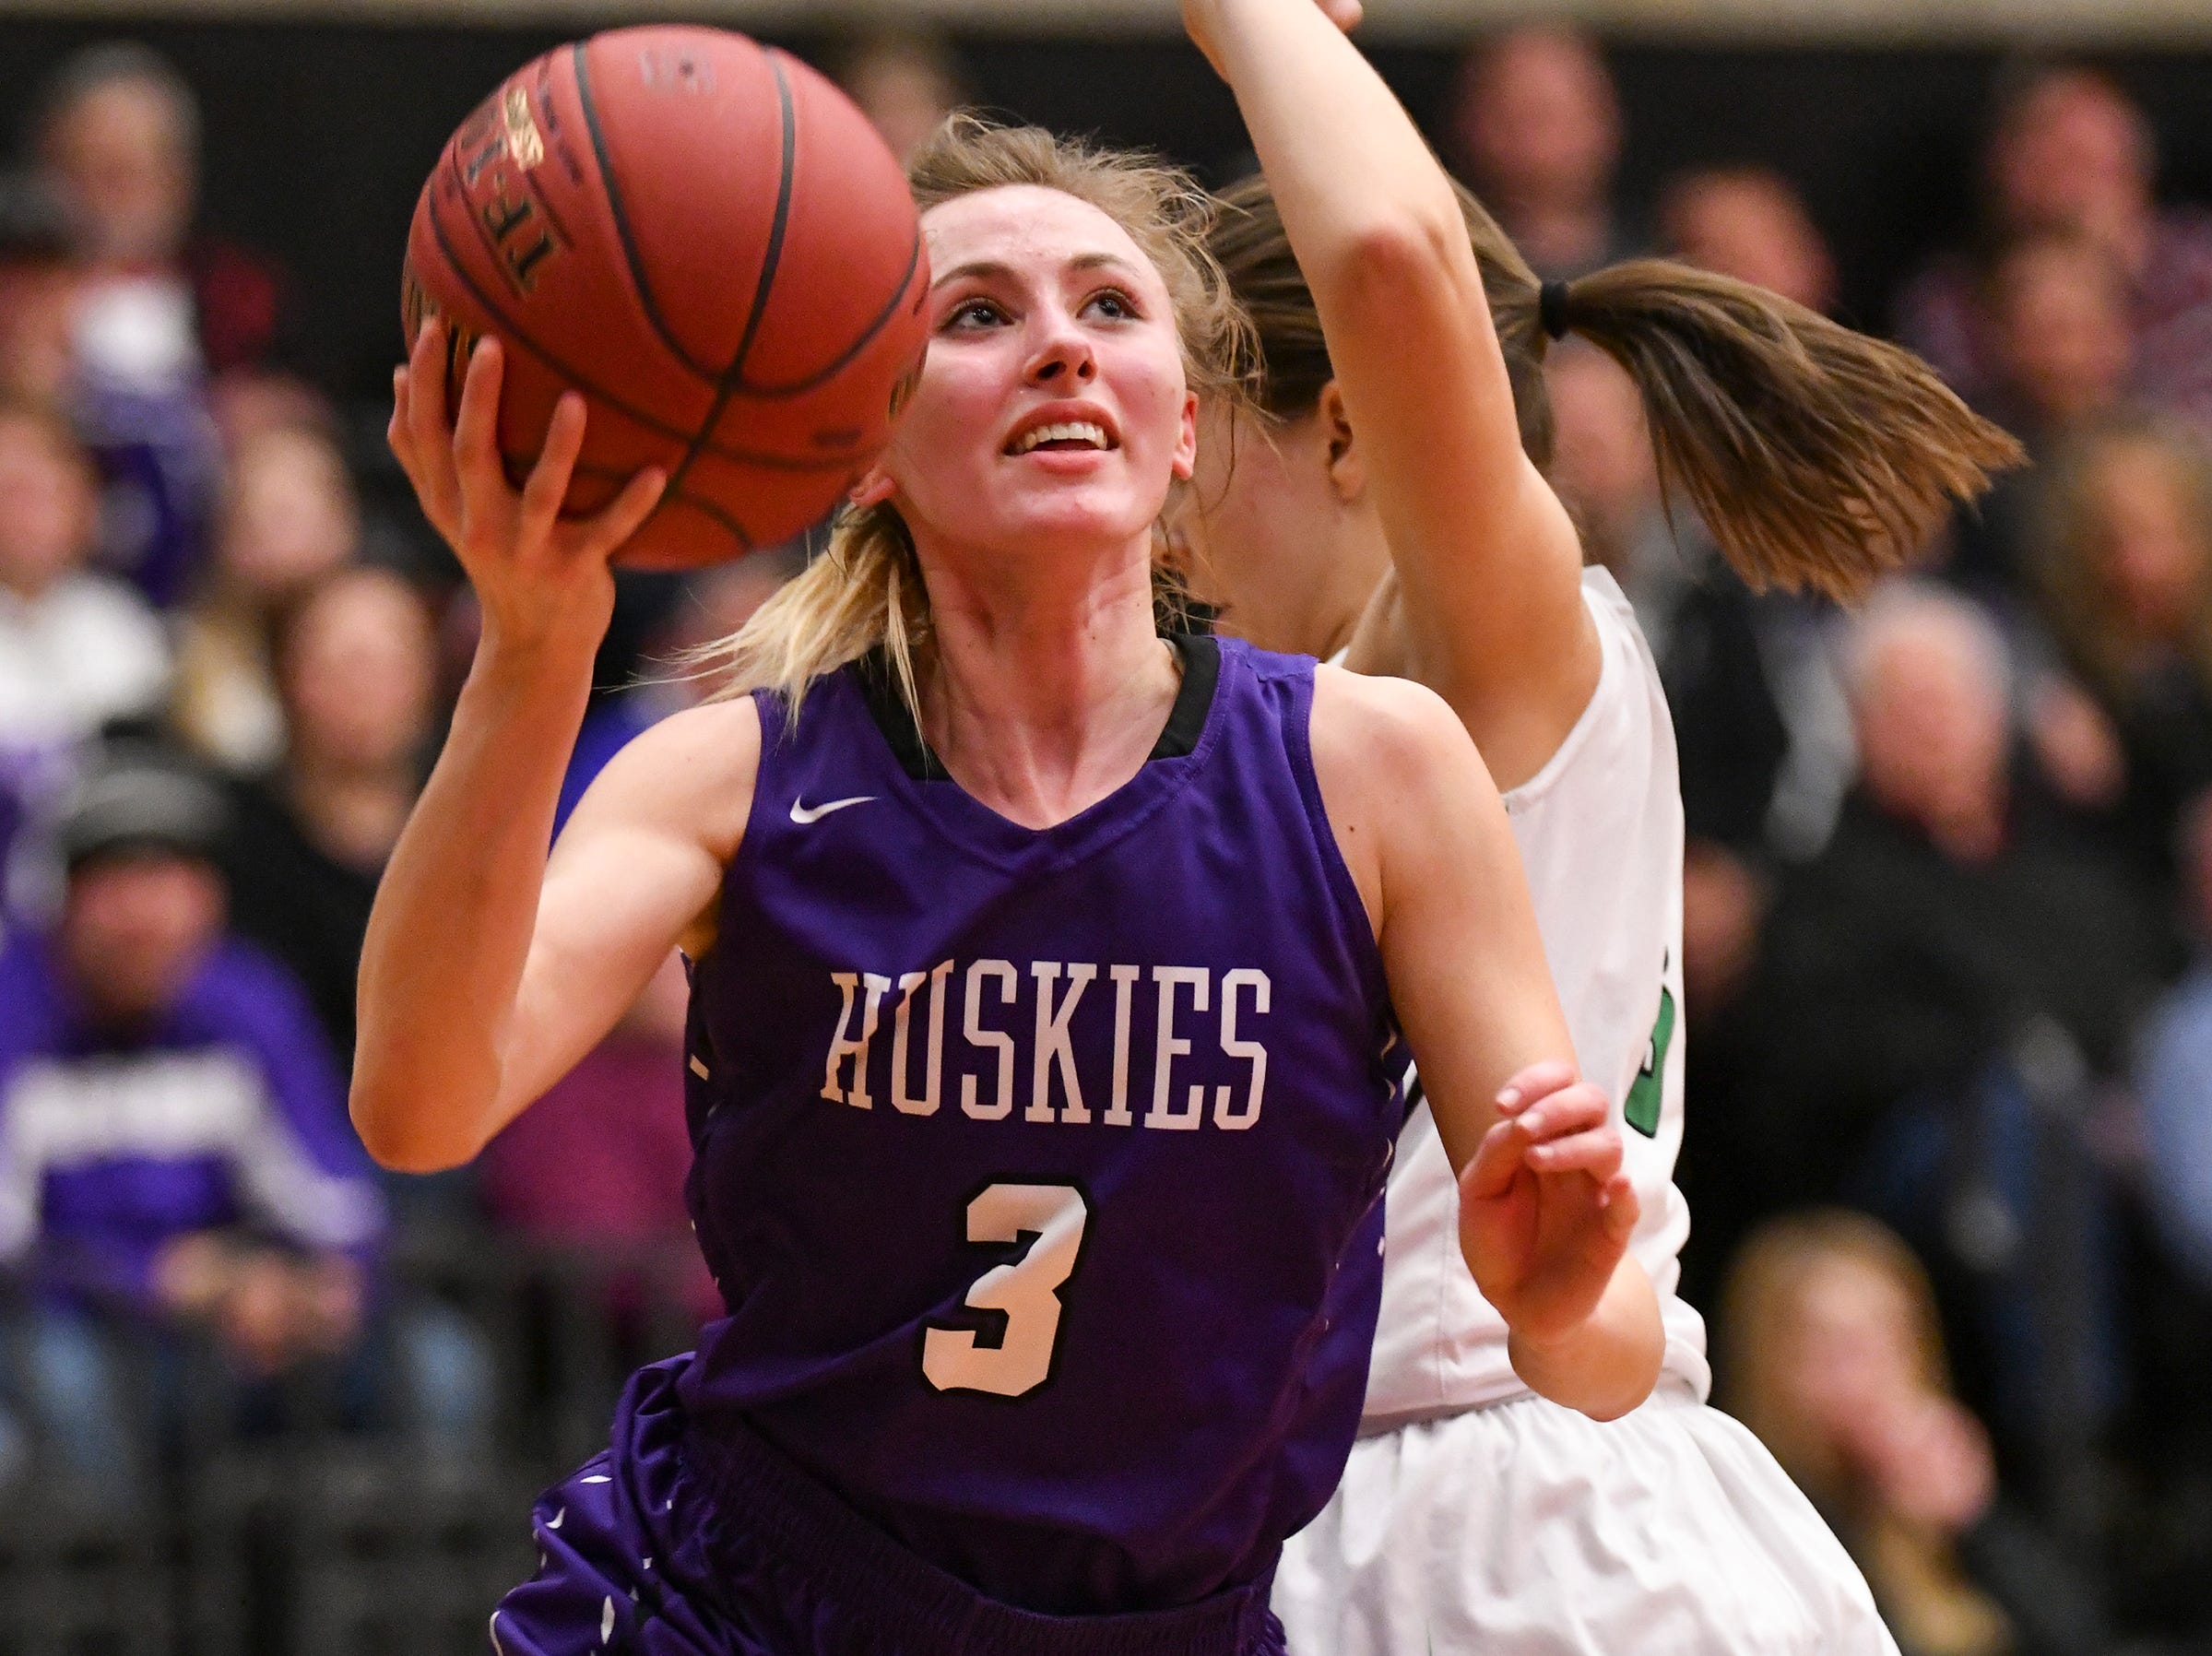 Albany's Amanda Kollodge eyes the basket during the Section 6-2A championship game against Pine City Friday, March 8, at Halenbeck Hall in St. Cloud.